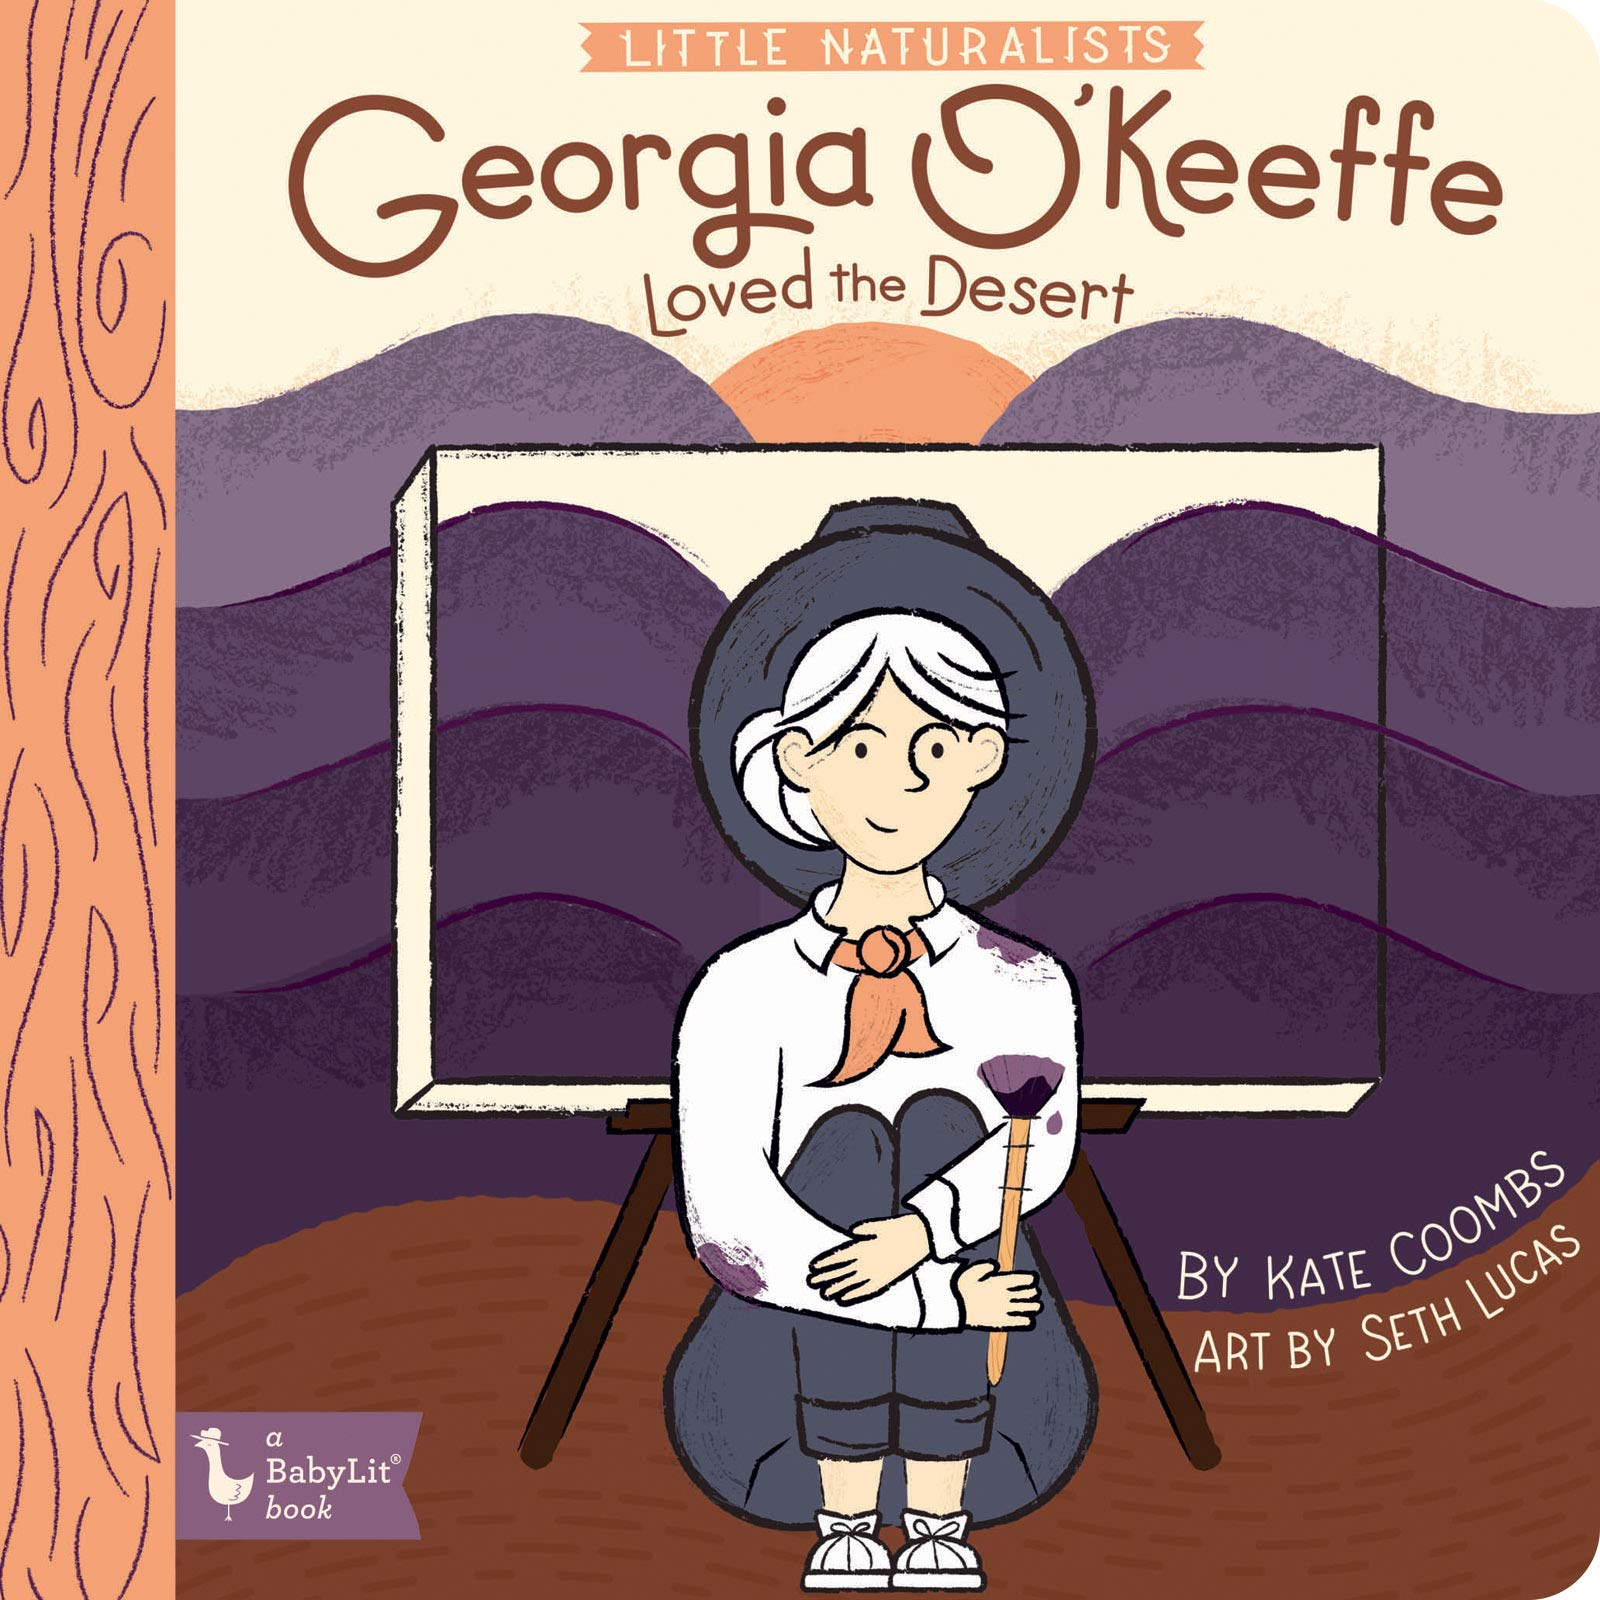 Georgia O'Keeffe Loved the Desert: Little Naturalists